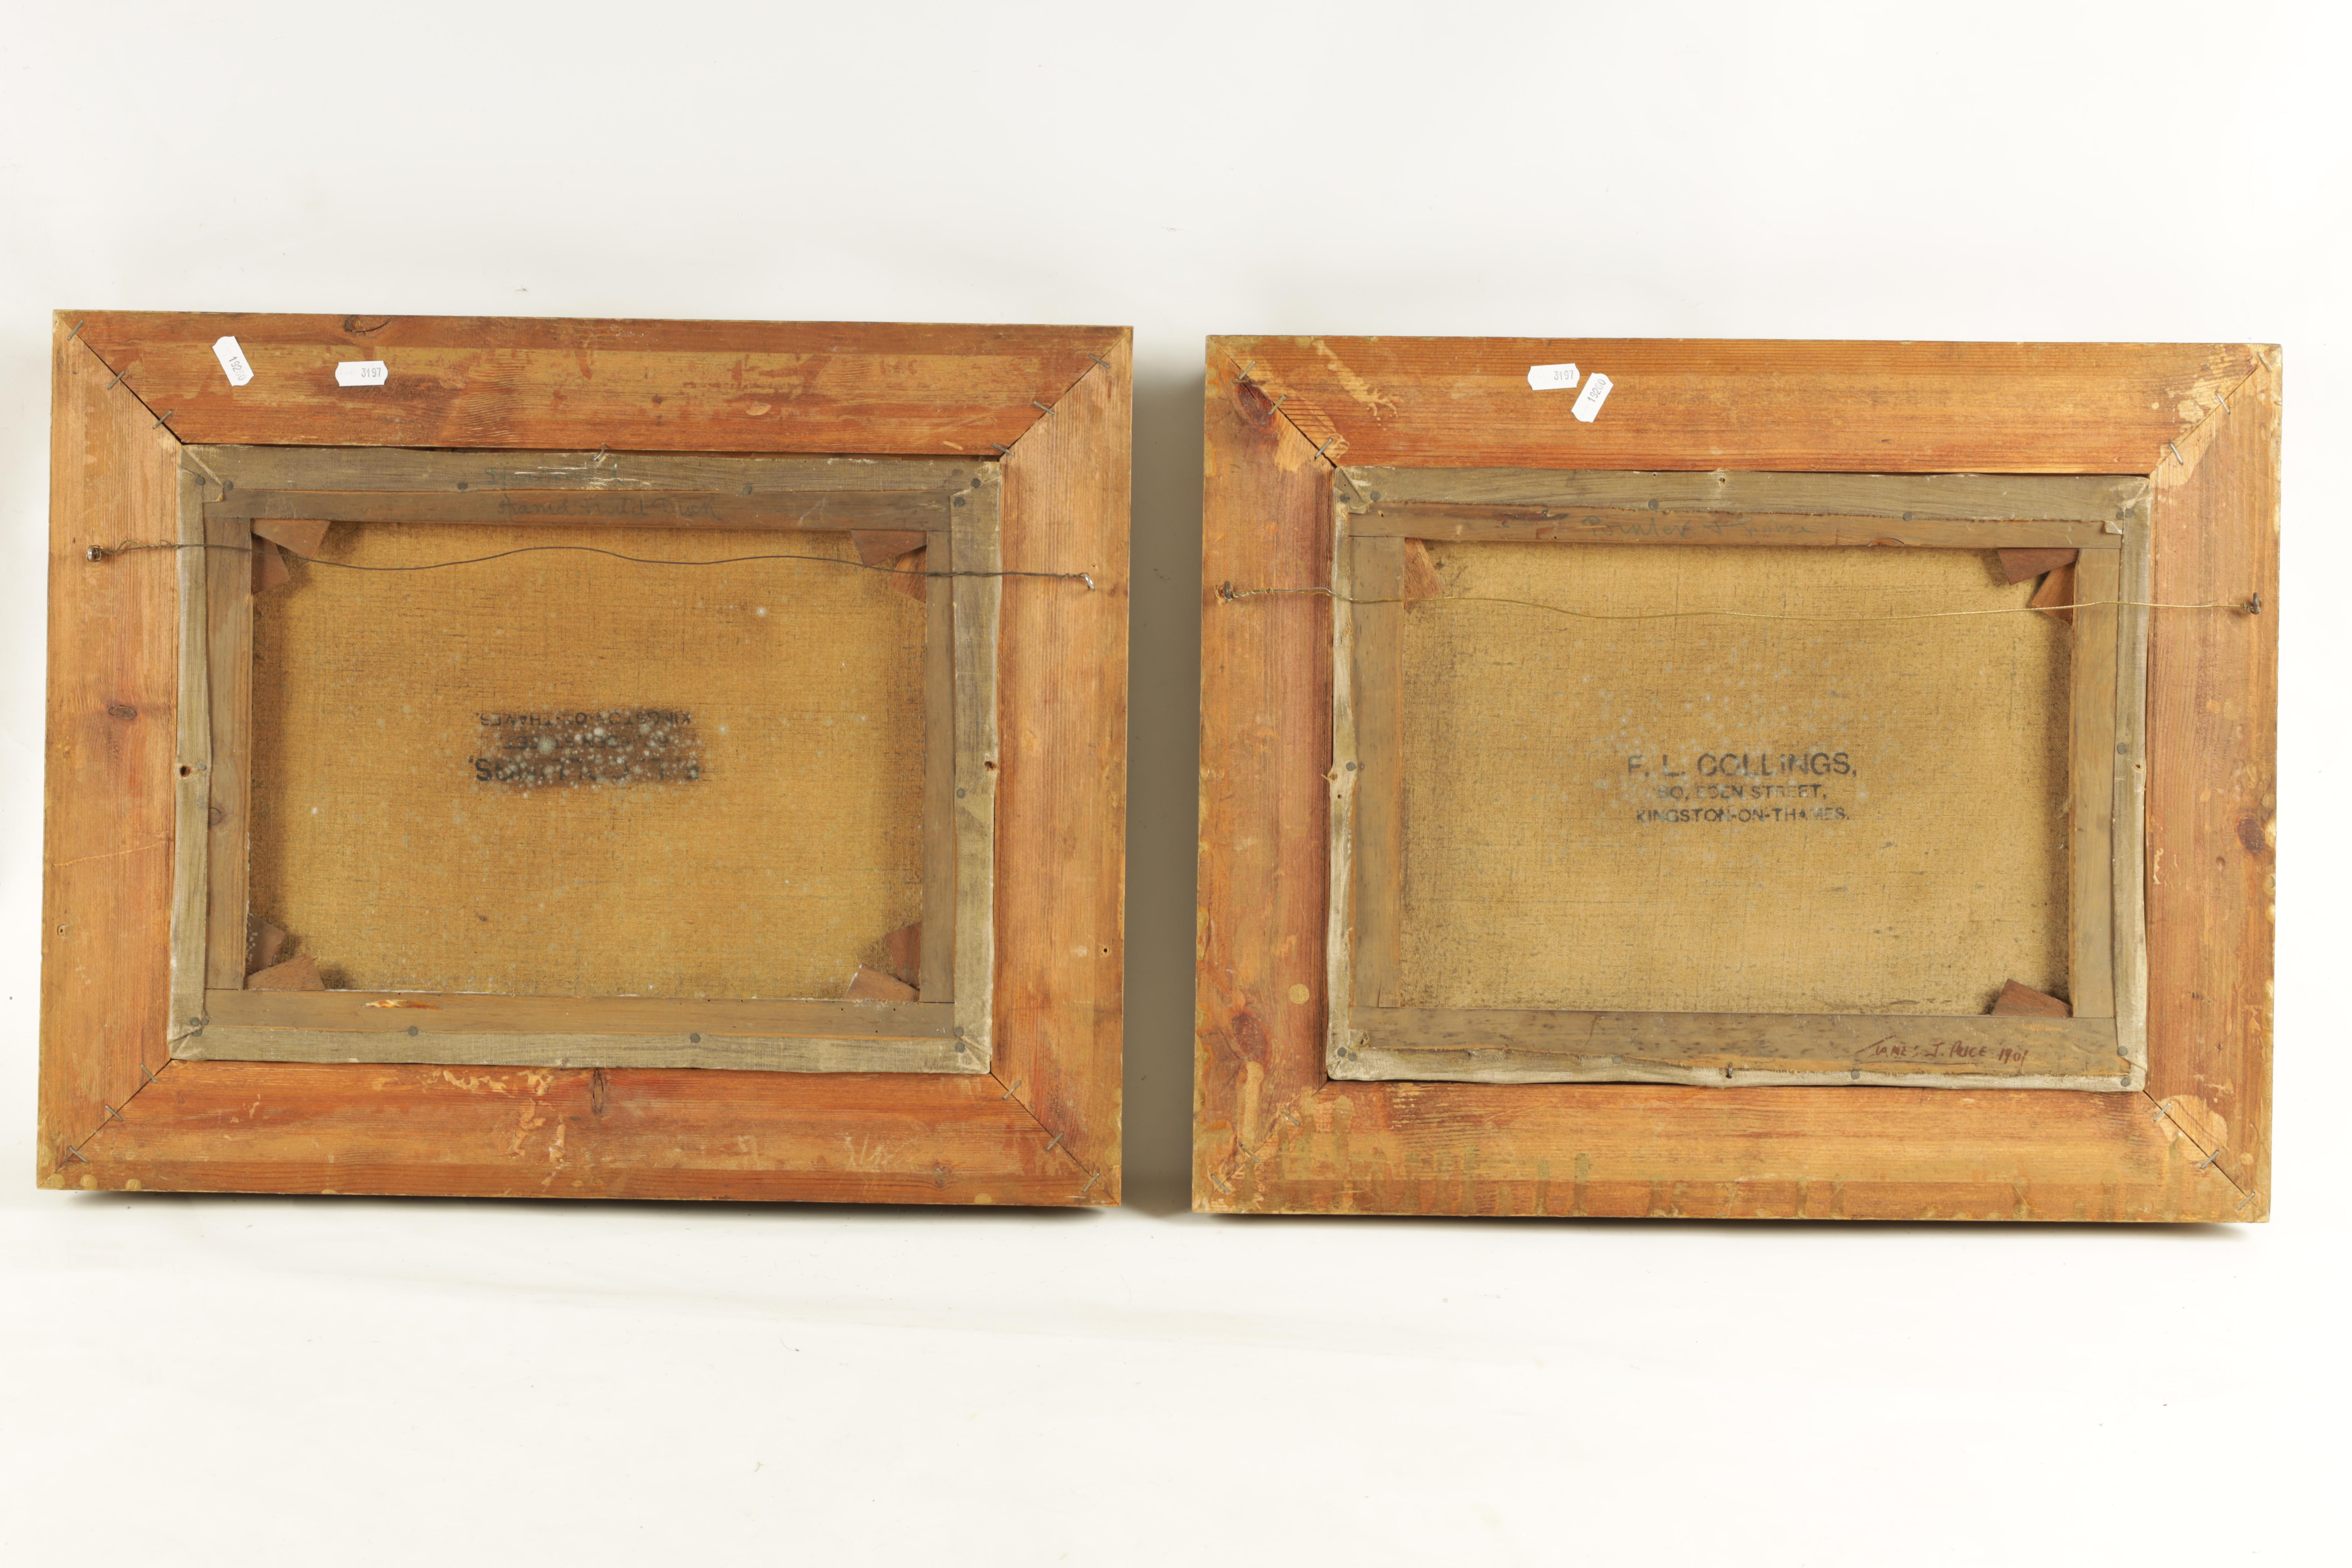 JAMES PRICE A PAIR OF EARLY 20TH CENTURY OILS ON CANVAS titled and signed on reverse 'Spaniel and - Image 4 of 4